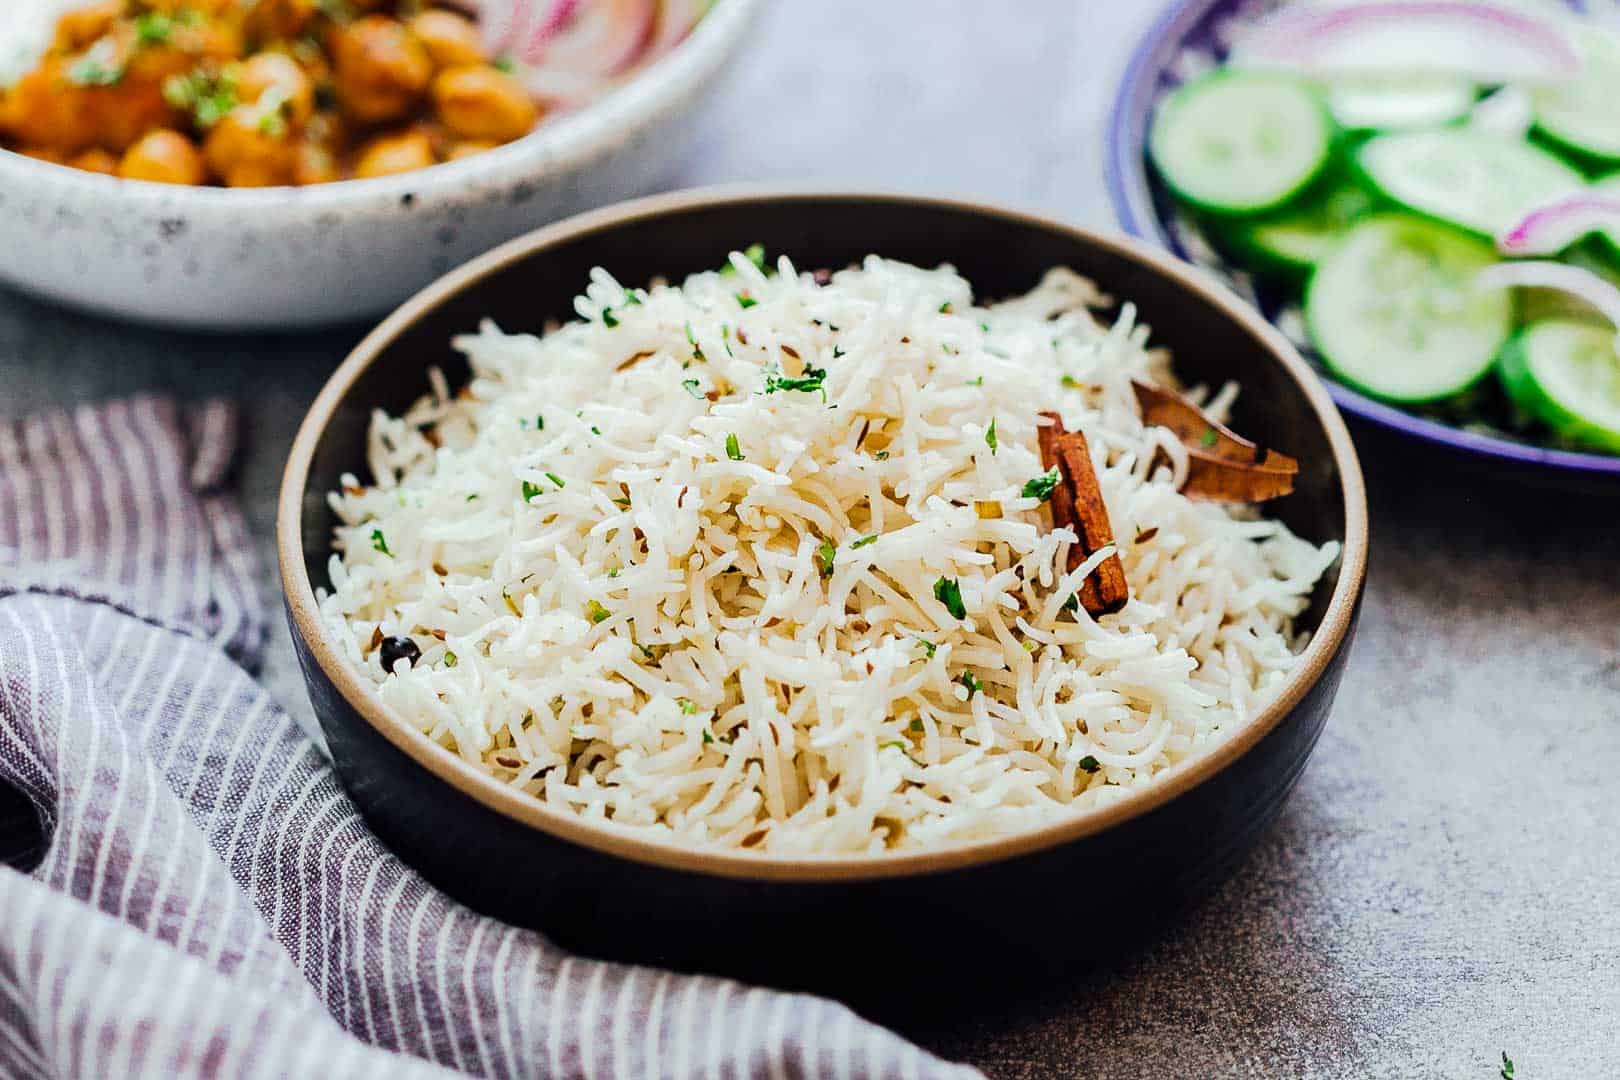 Running-Out-Of-Ideas-To-Cook?-Try-This-Jeera-Pulao-Recipe-Today